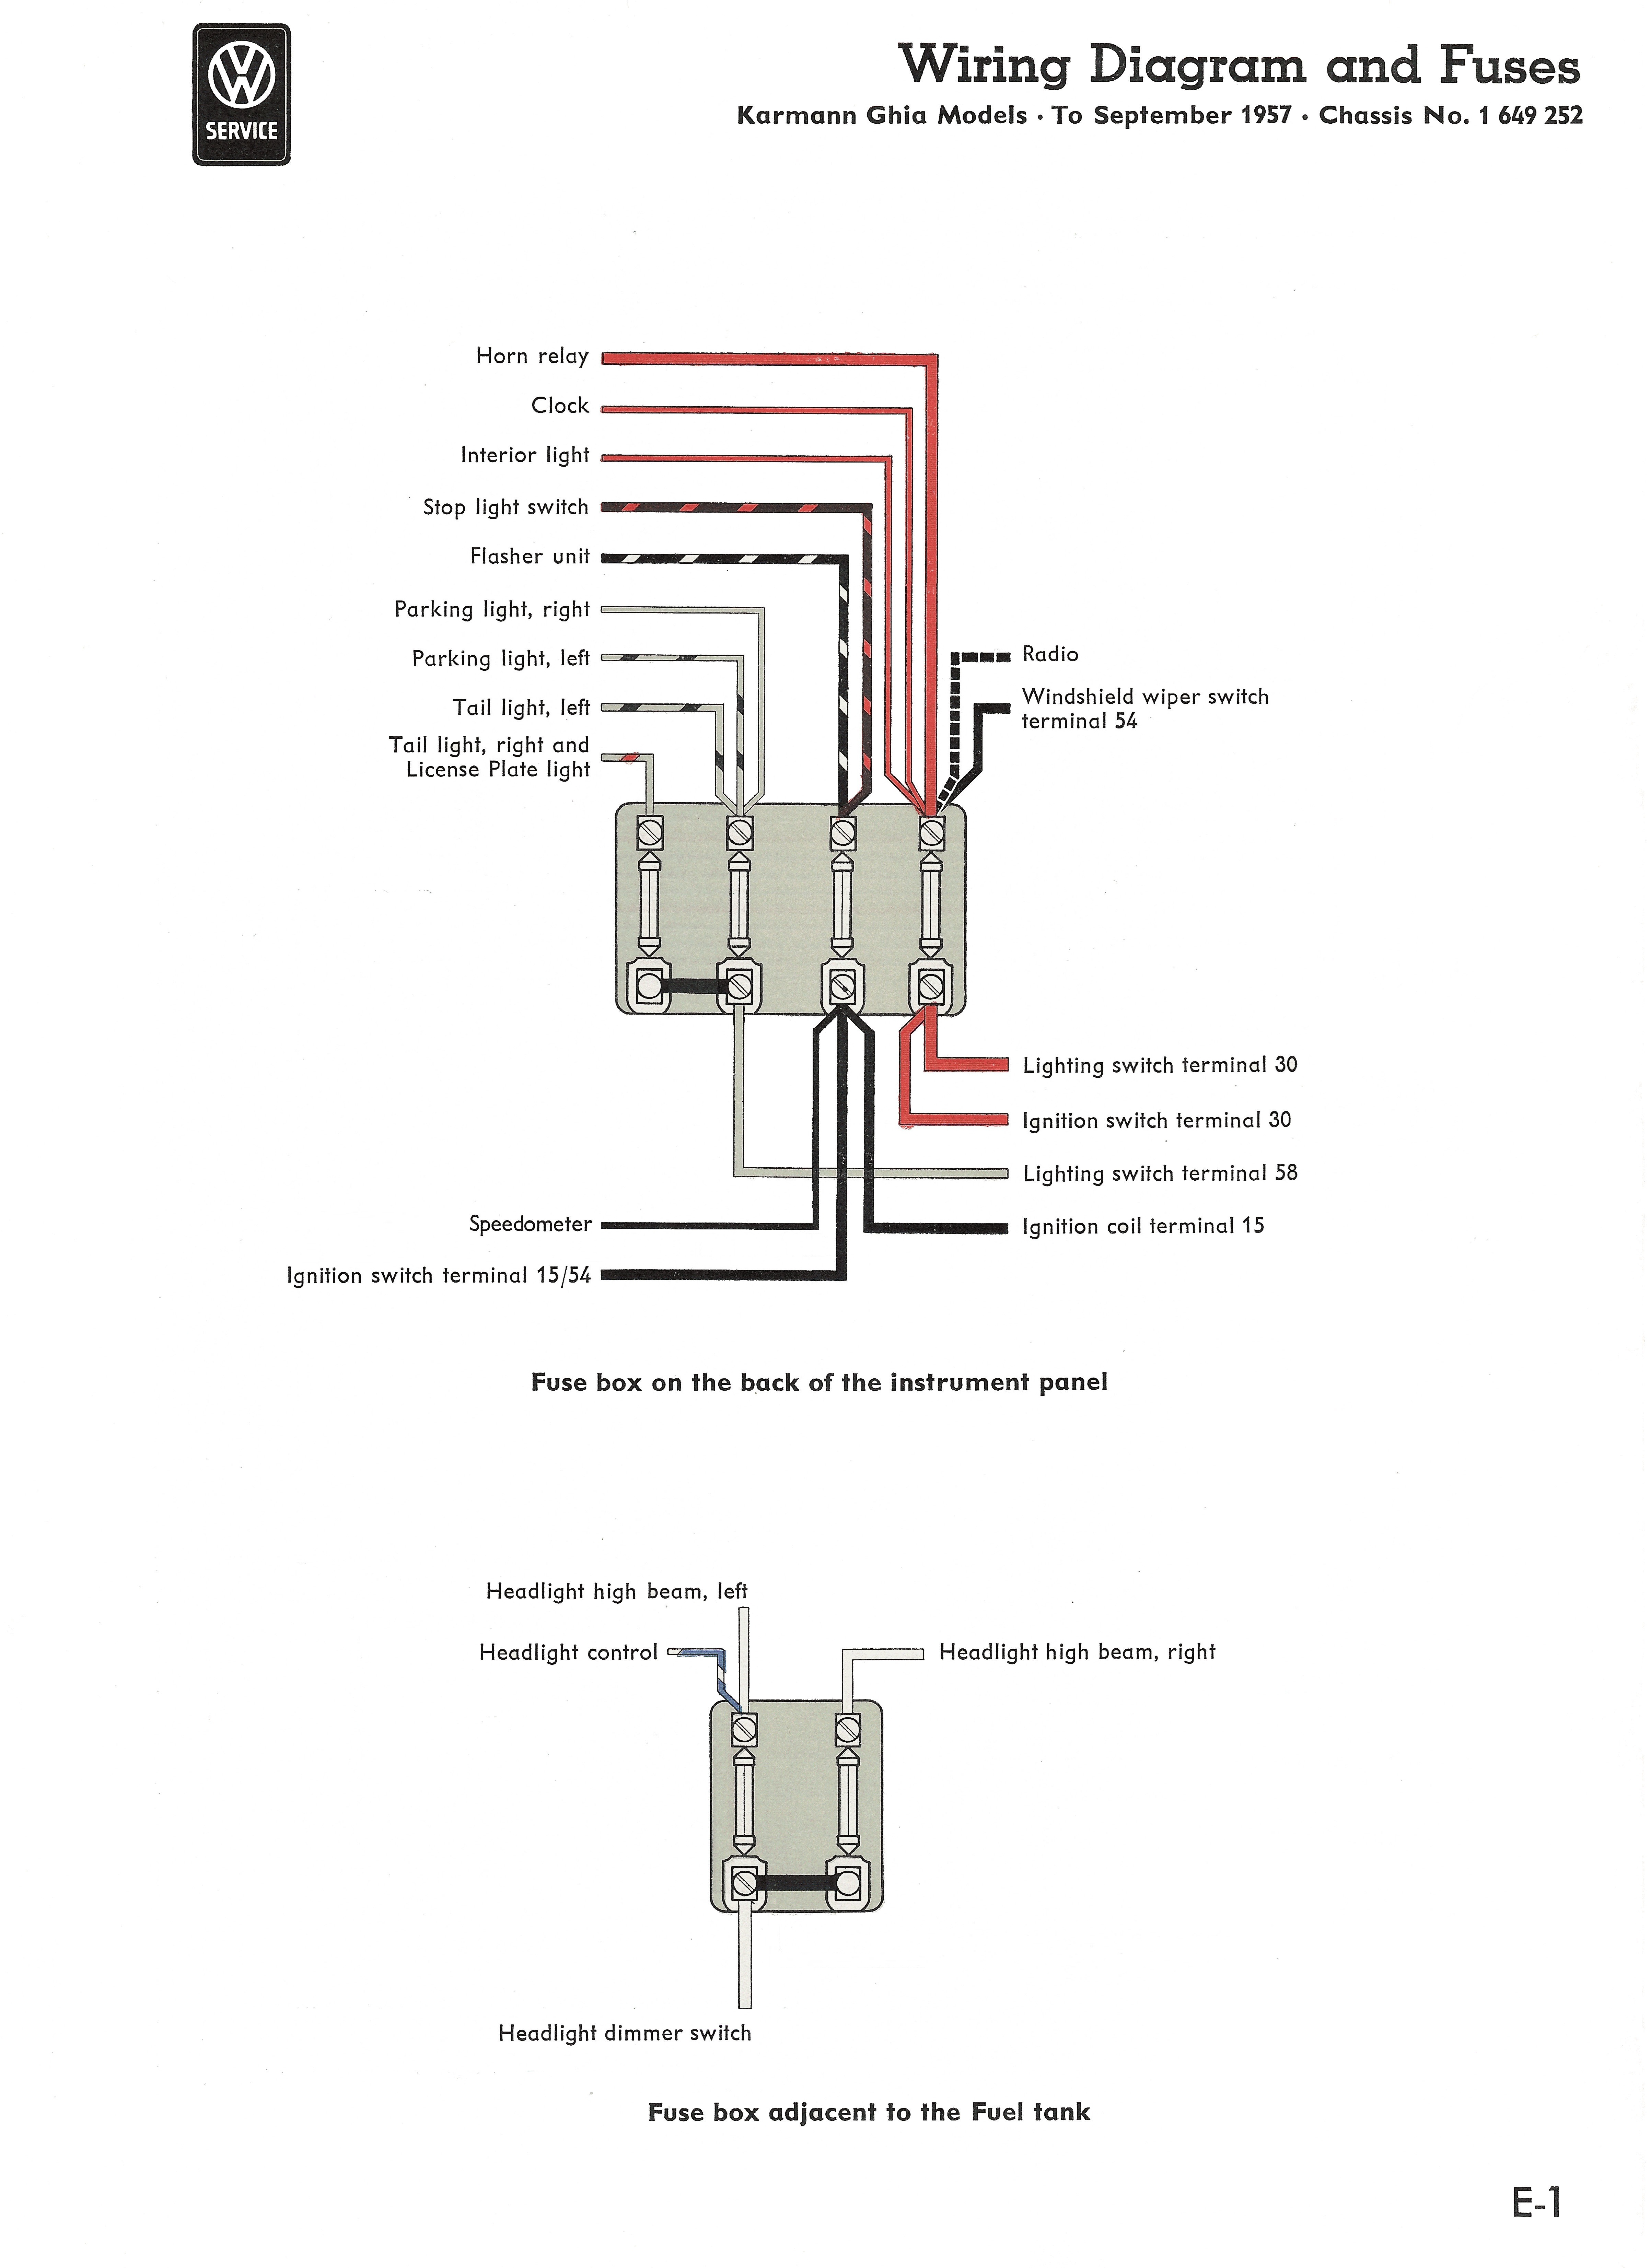 Download High Beam Switch Wiring Diagram